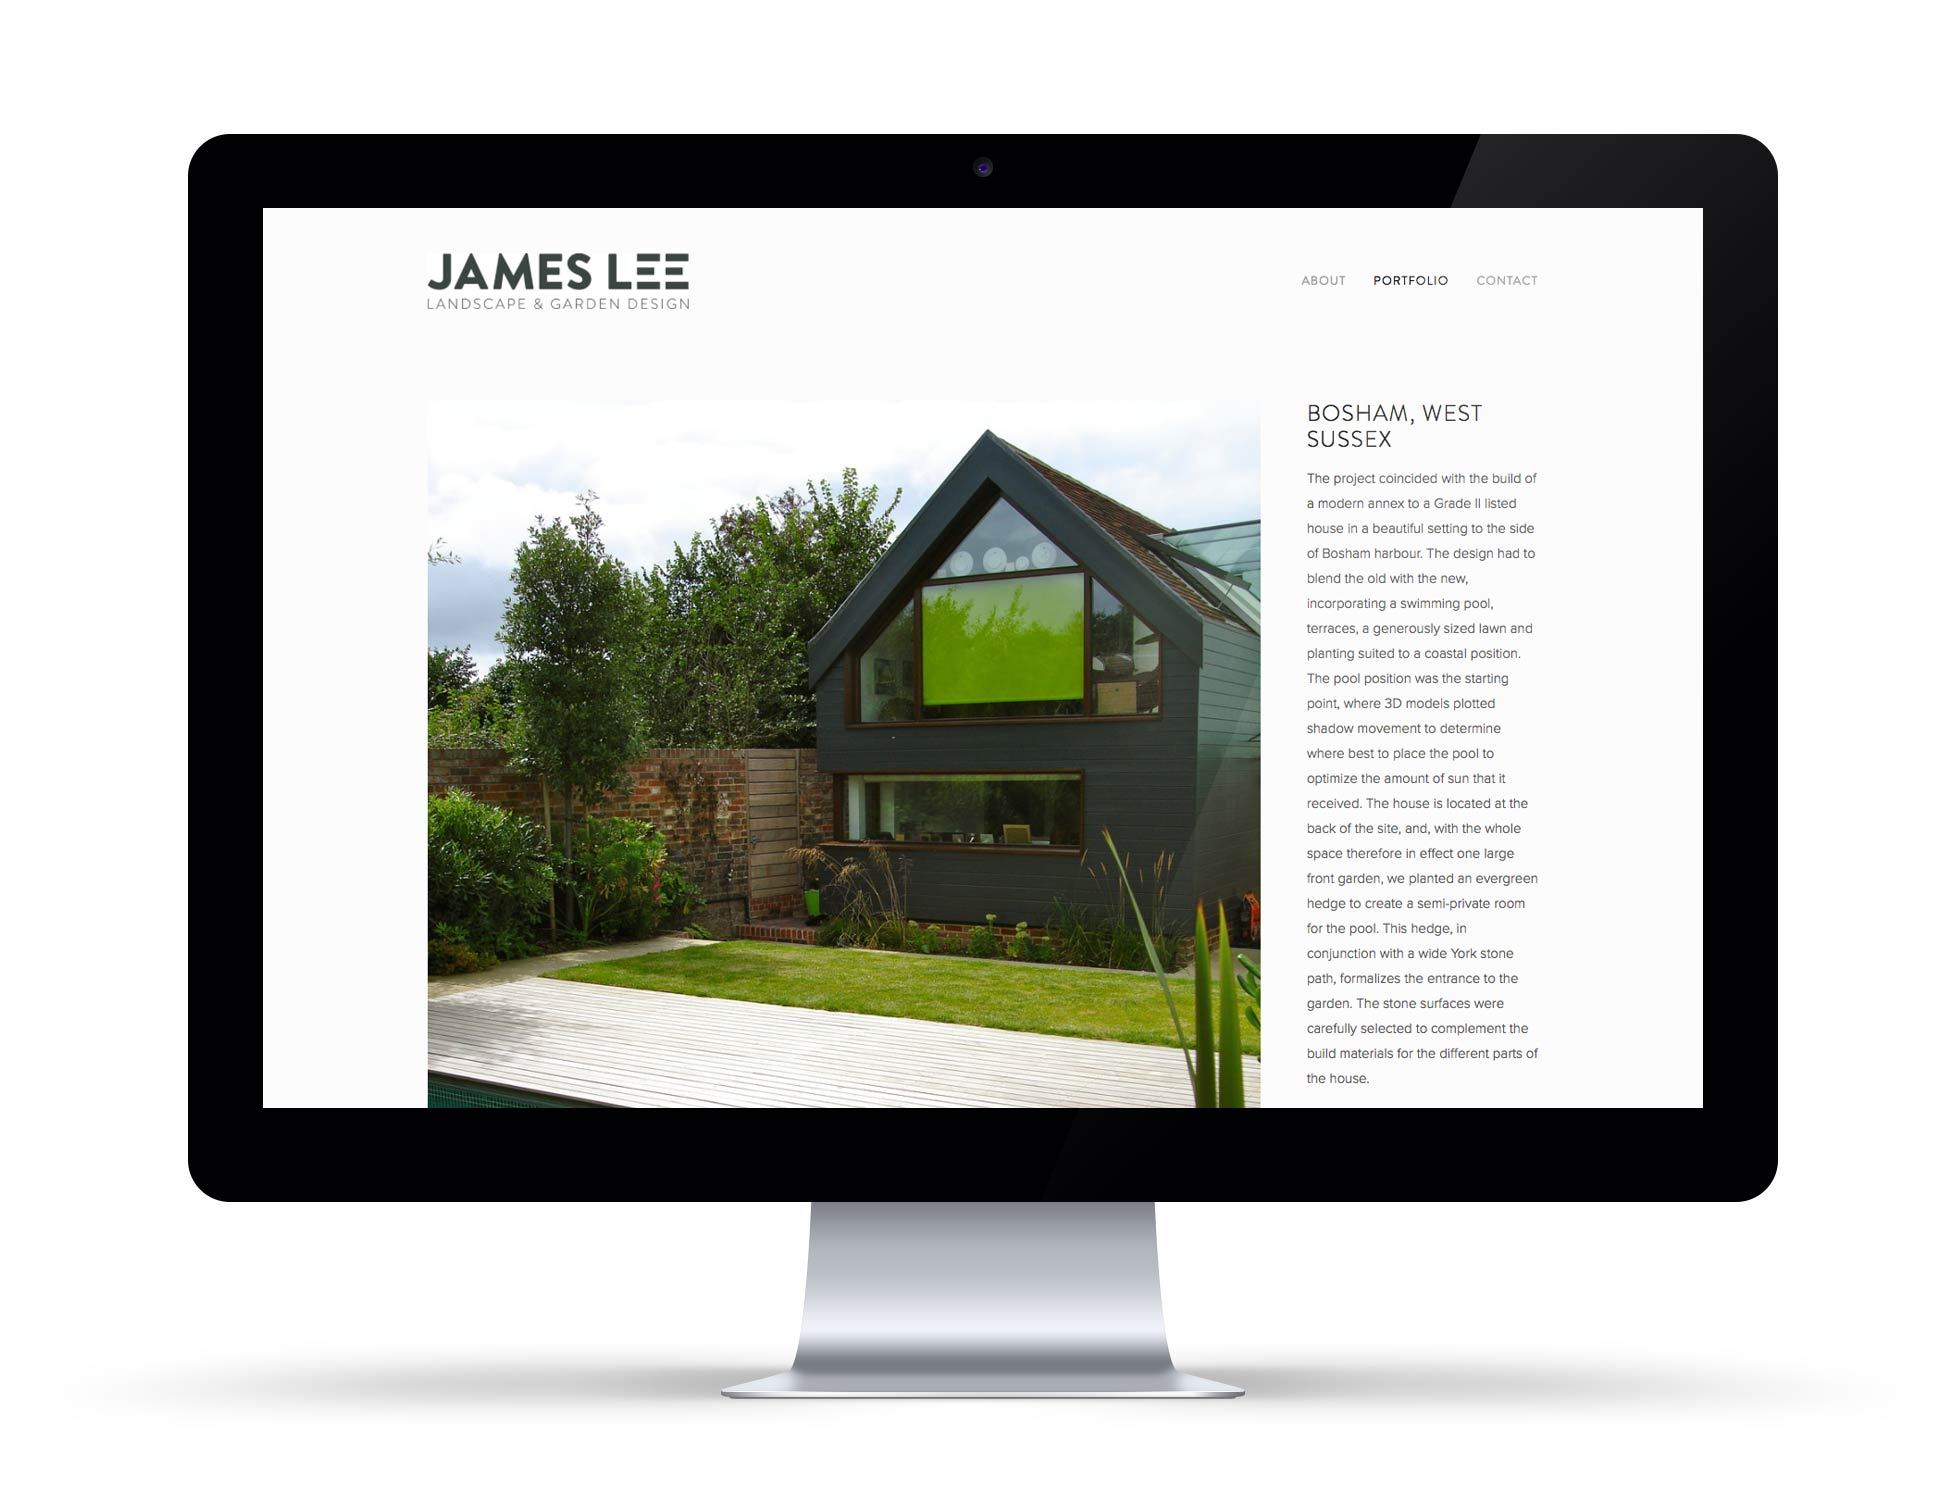 ... James Lee Website ...